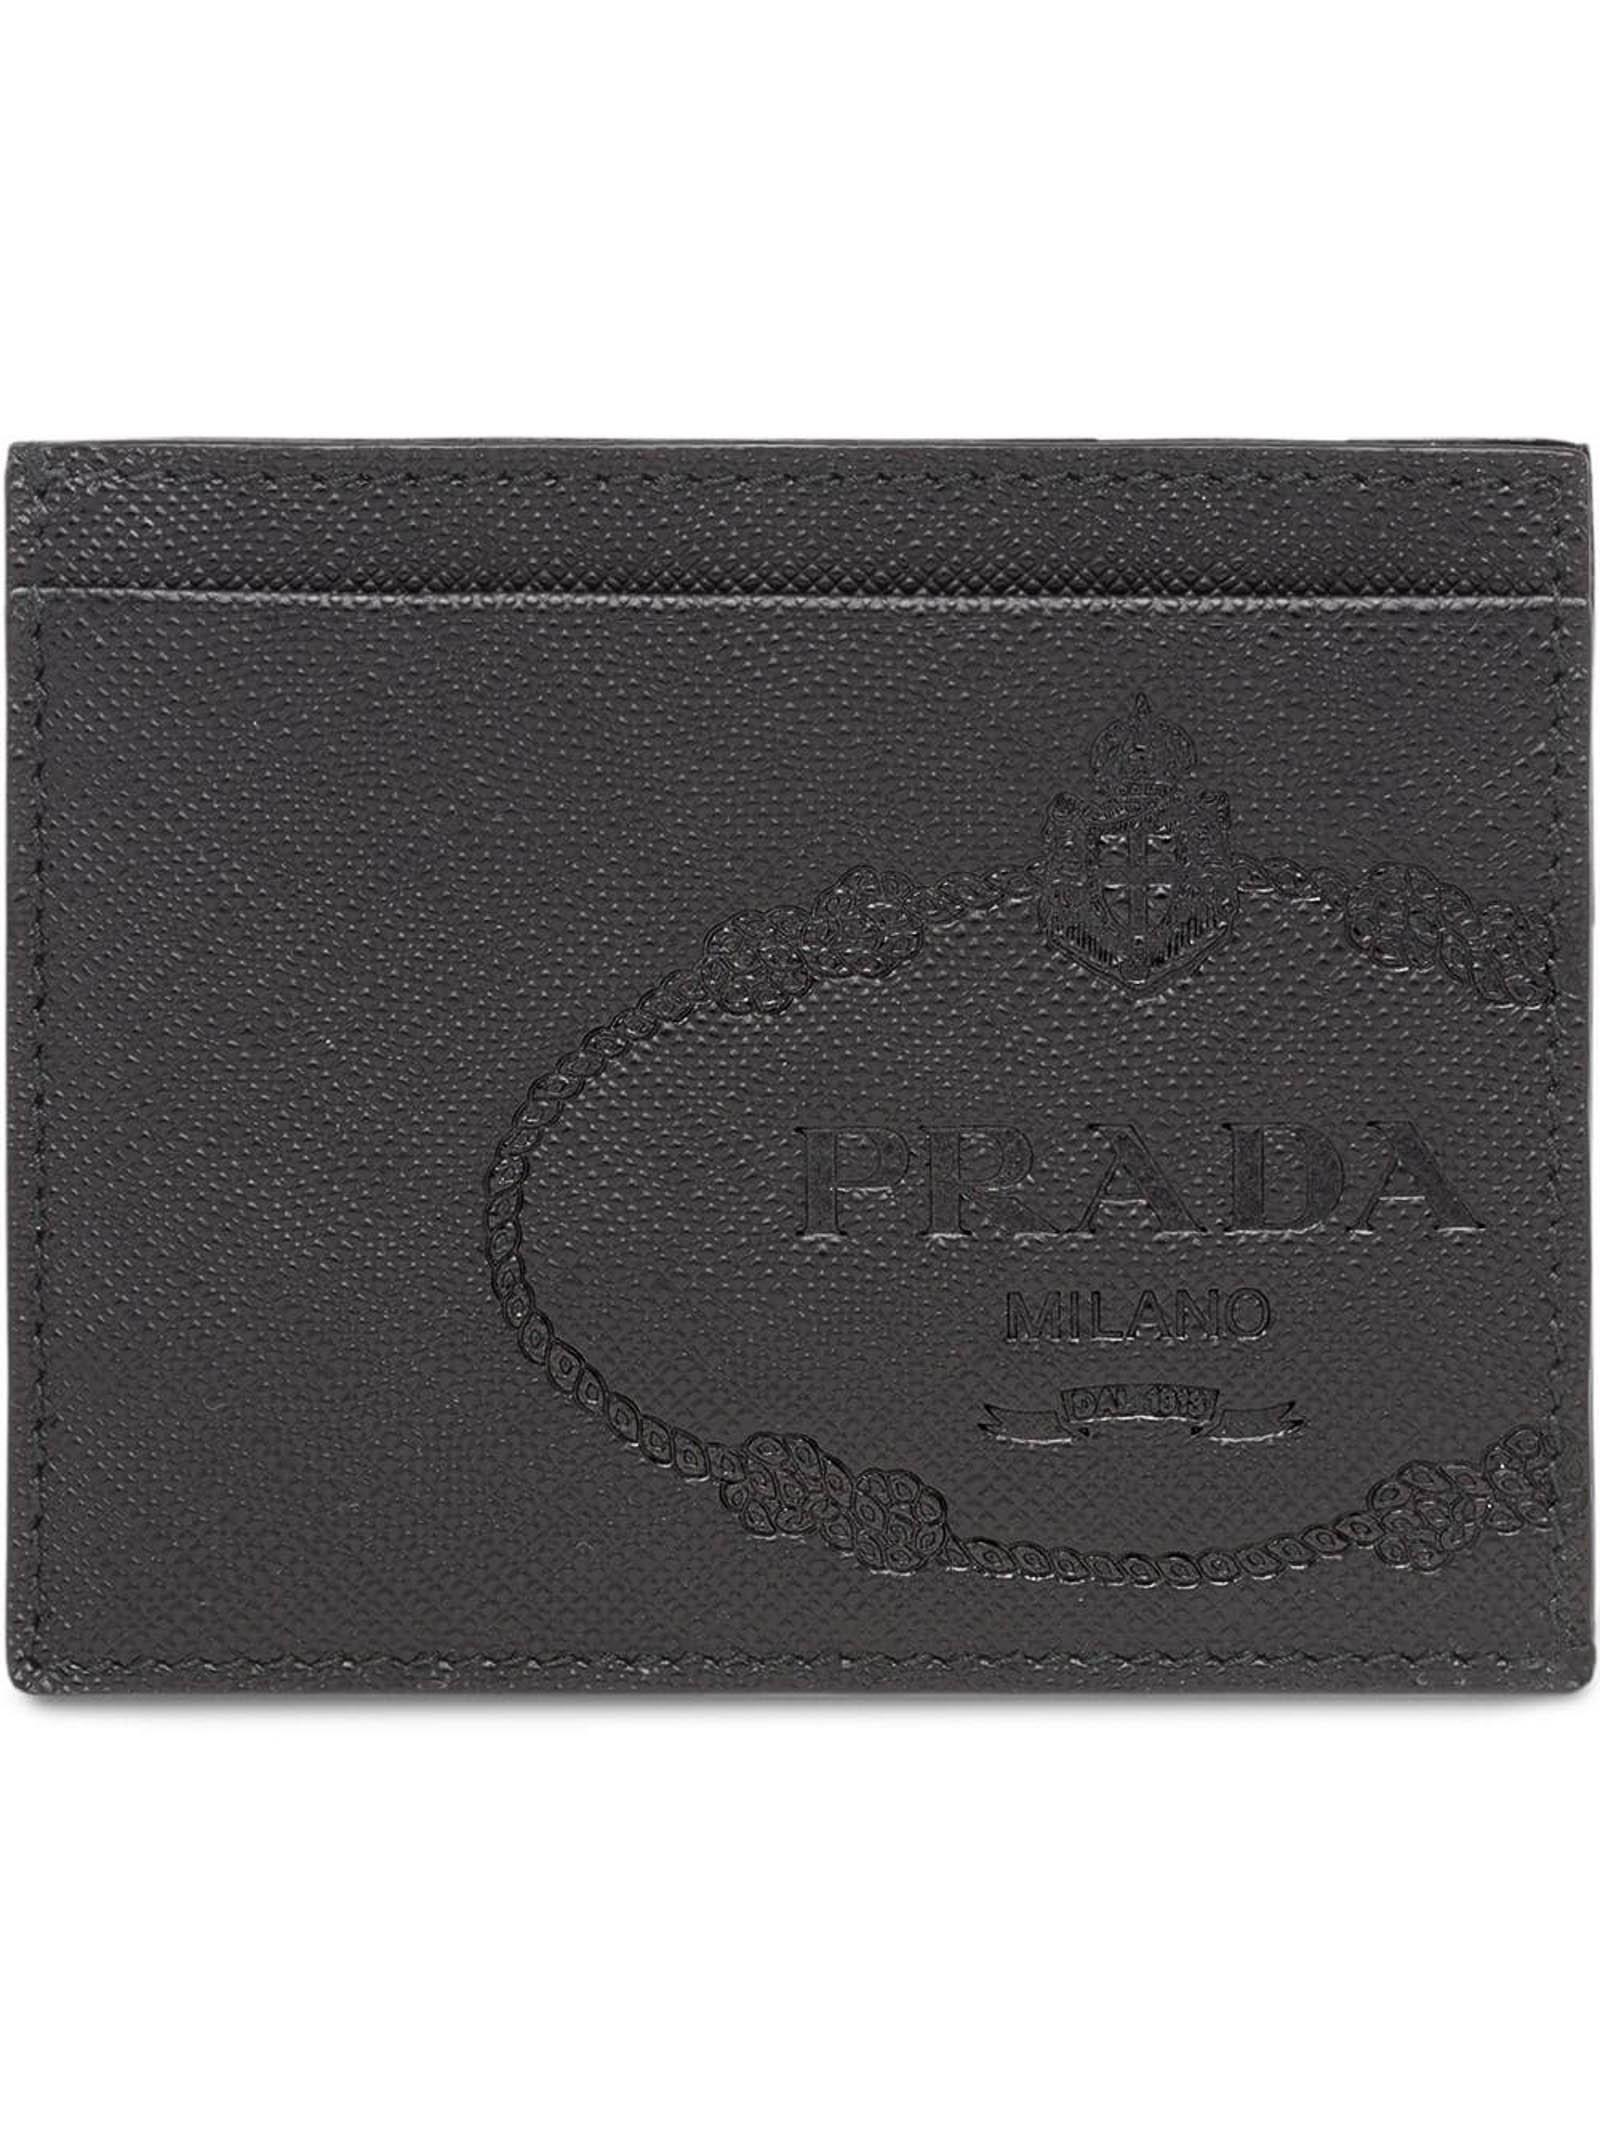 76d82d27e63c57 Prada Cc Case Saffiano Metal in Black for Men - Lyst